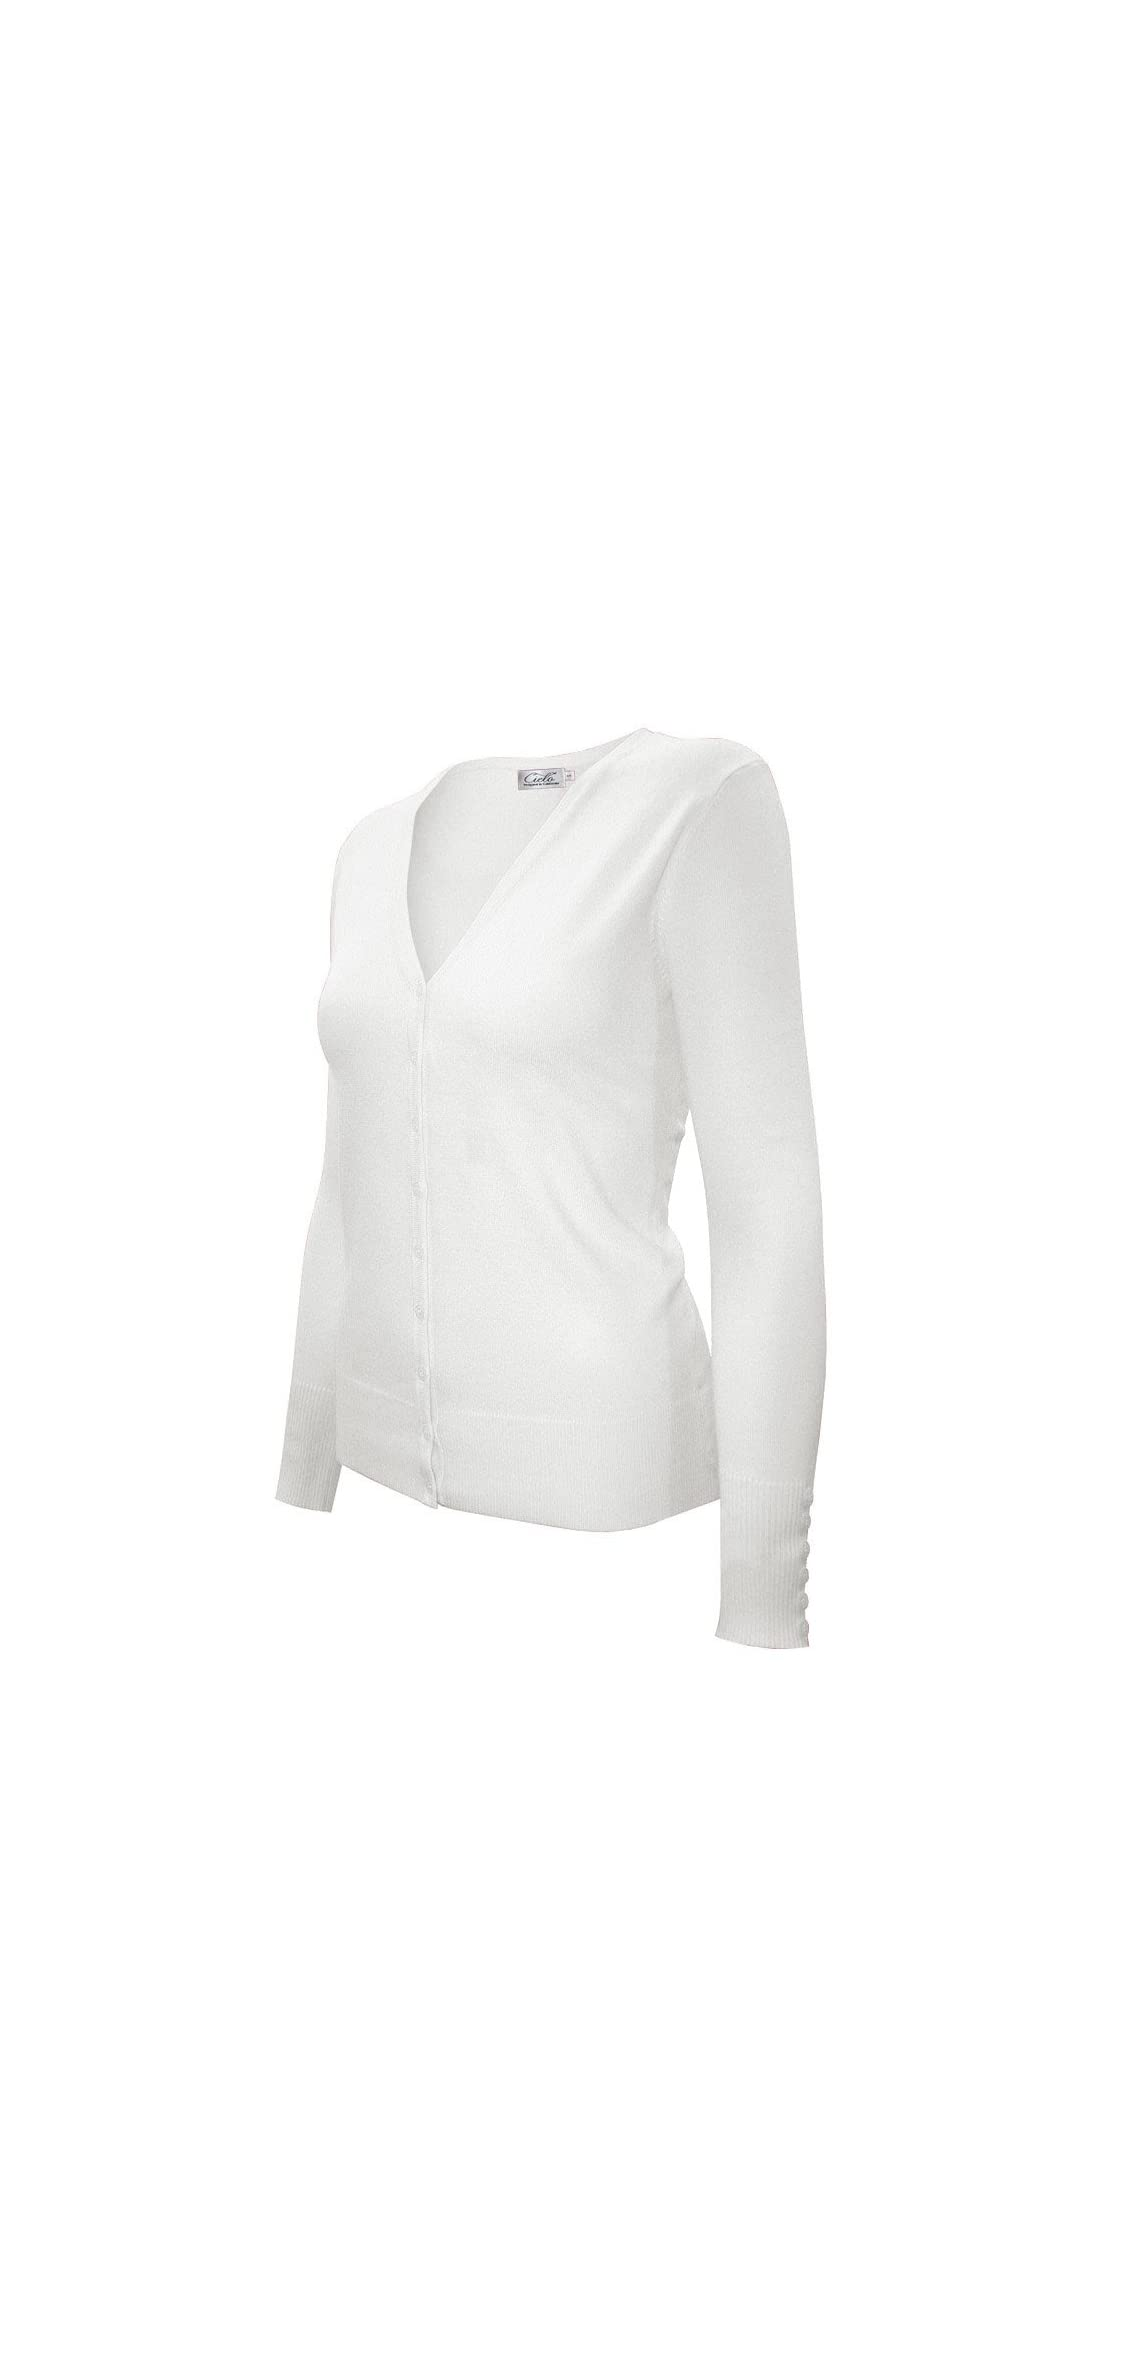 Women's Classic Knit Silk Soft Cardigan Sweater, V-neck